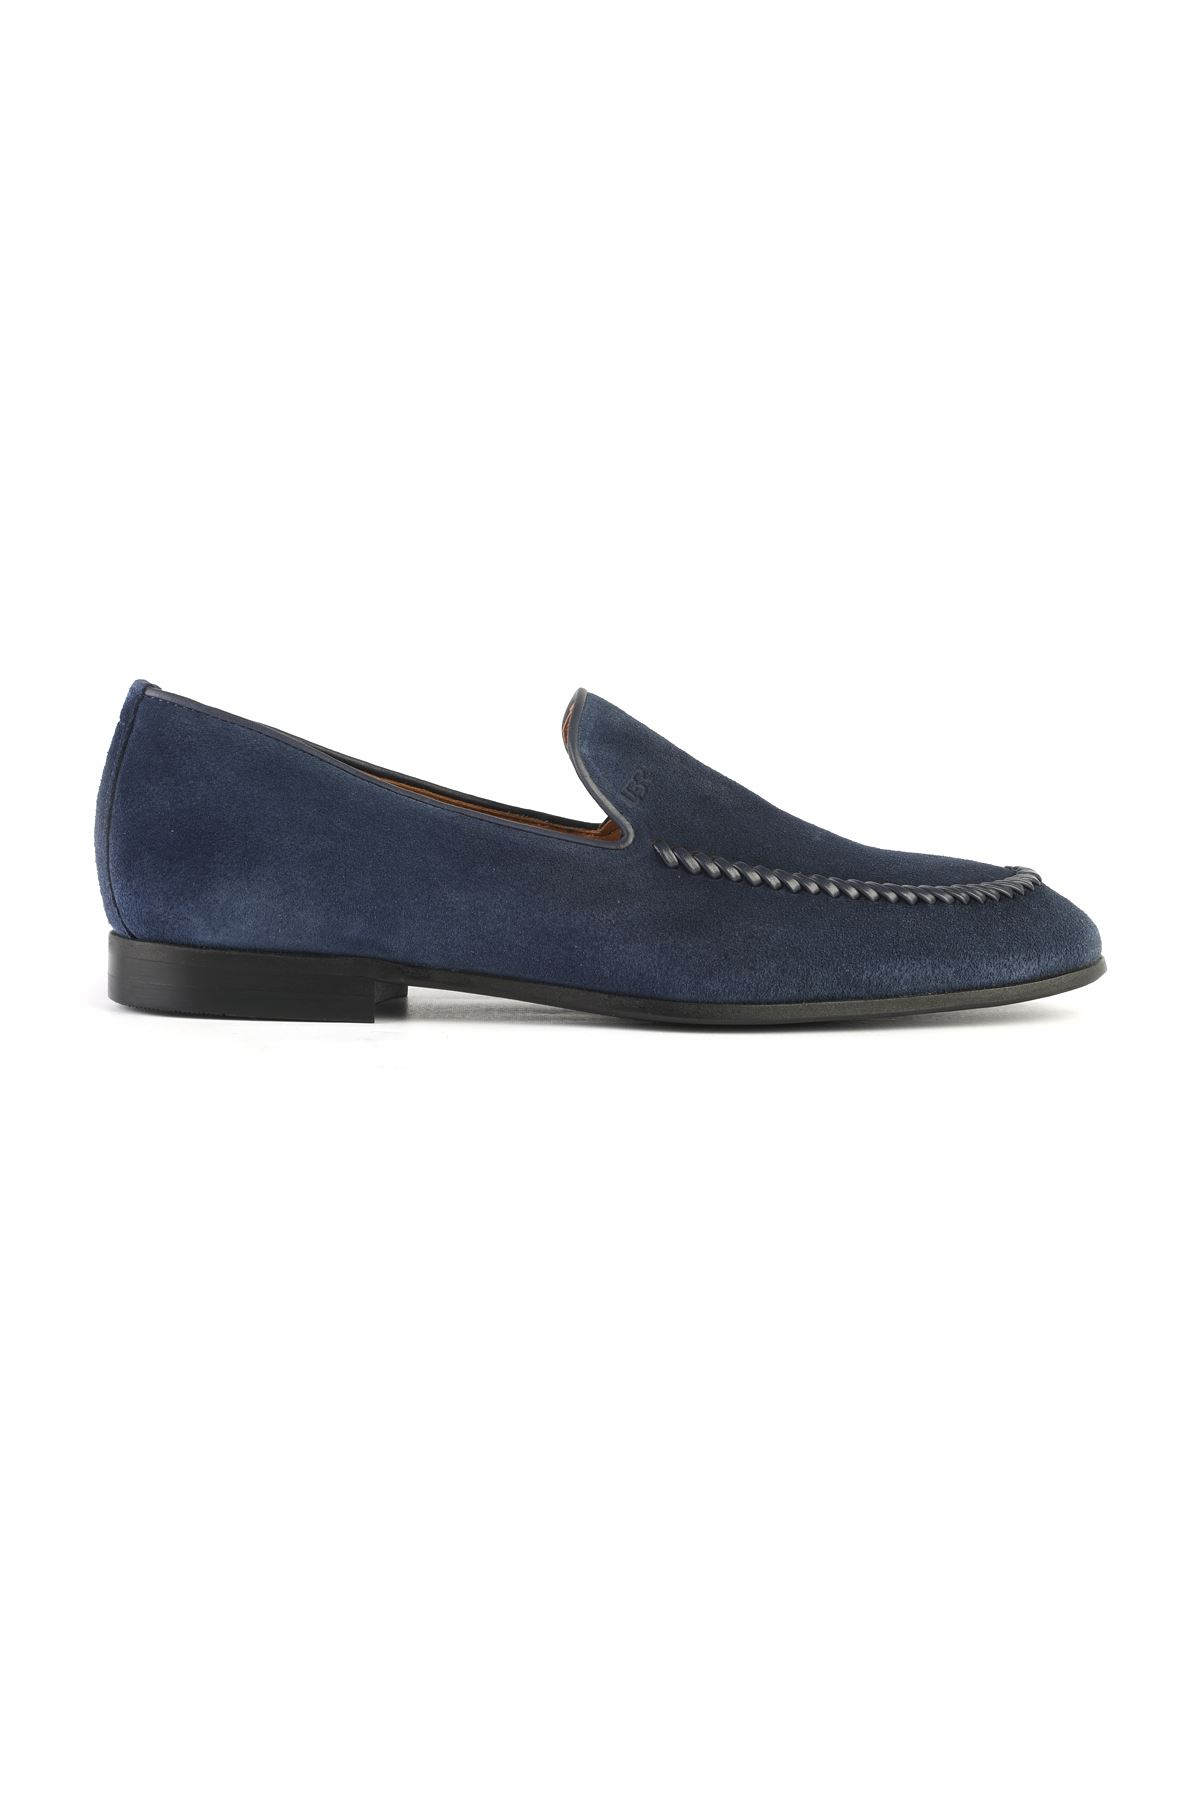 Libero 3260 Navy Blue Loafer Shoes